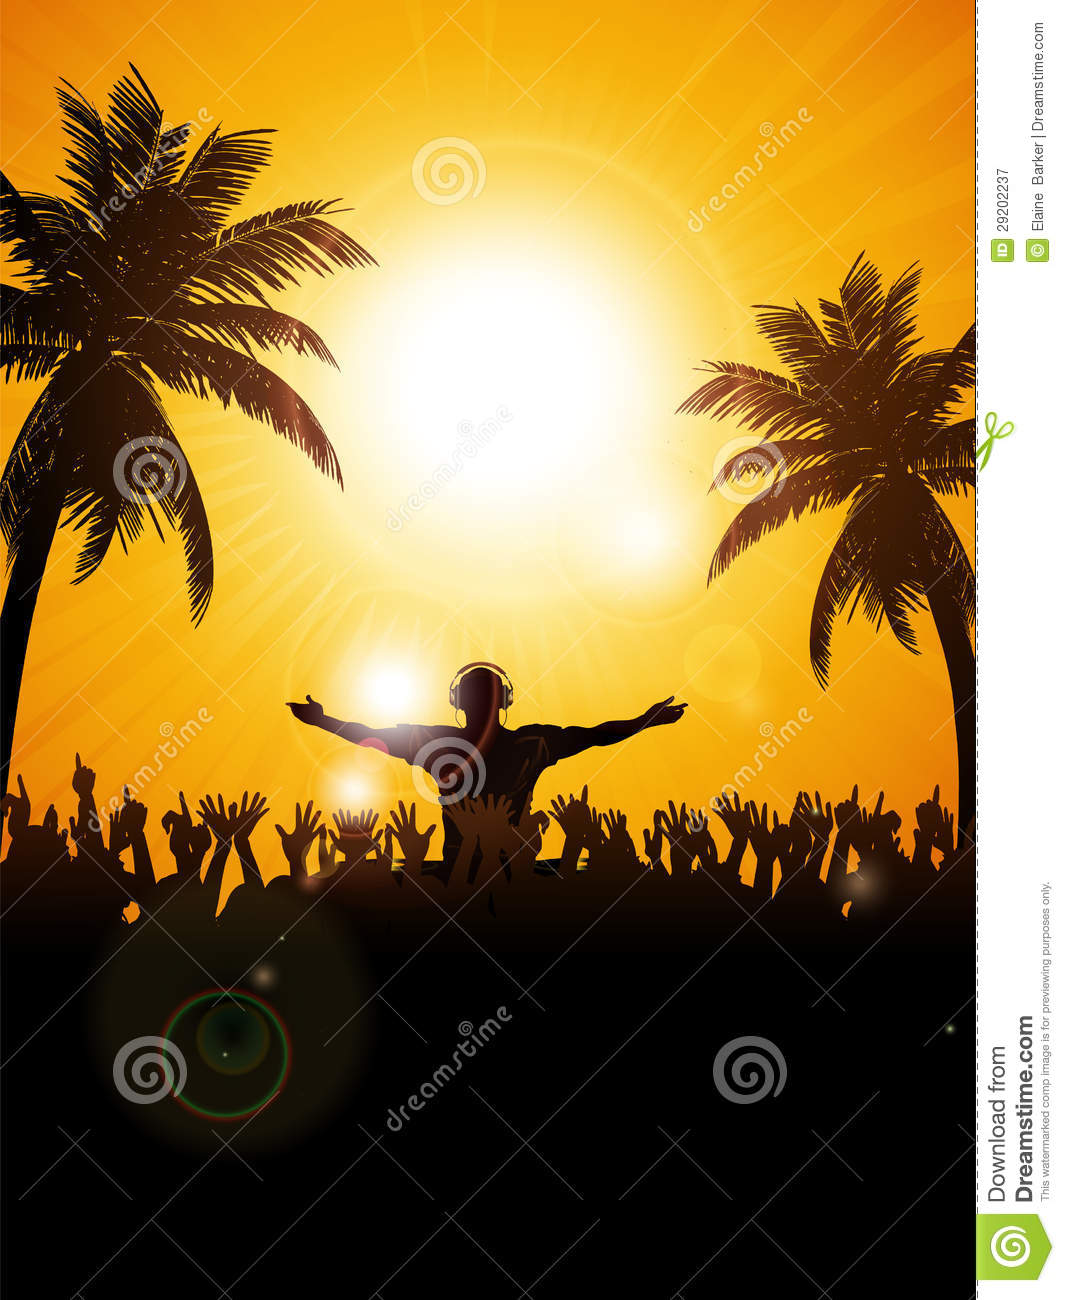 Summer Festival With Dj And Palm Trees Stock Illustration